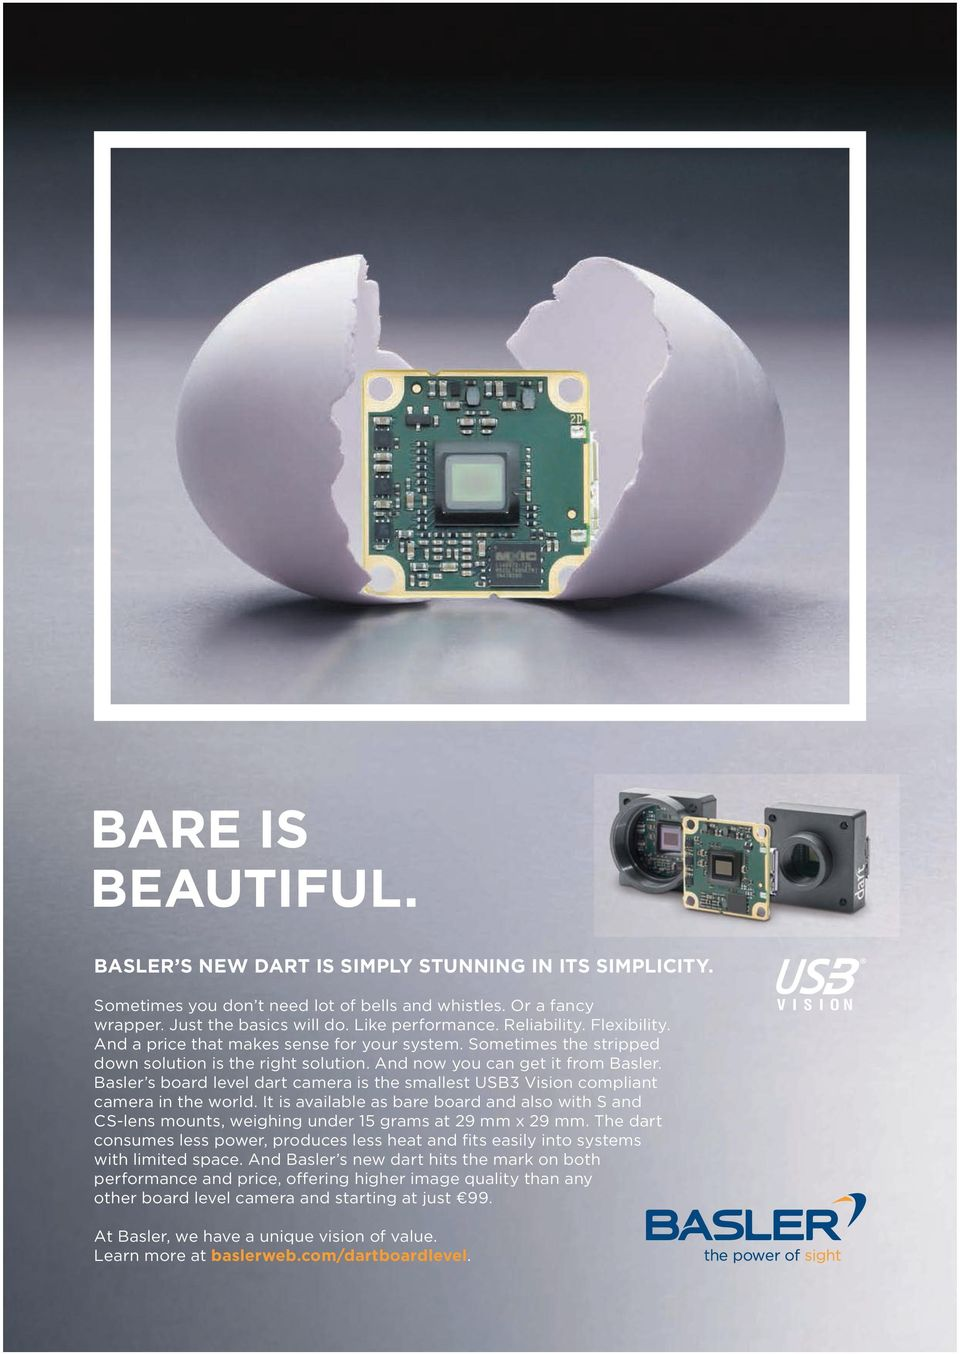 Basler s board level dart camera is the smallest USB3 Vision compliant camera in the world. It is available as bare board and also with S and CS-lens mounts, weighing under 15 grams at 29 mm x 29 mm.